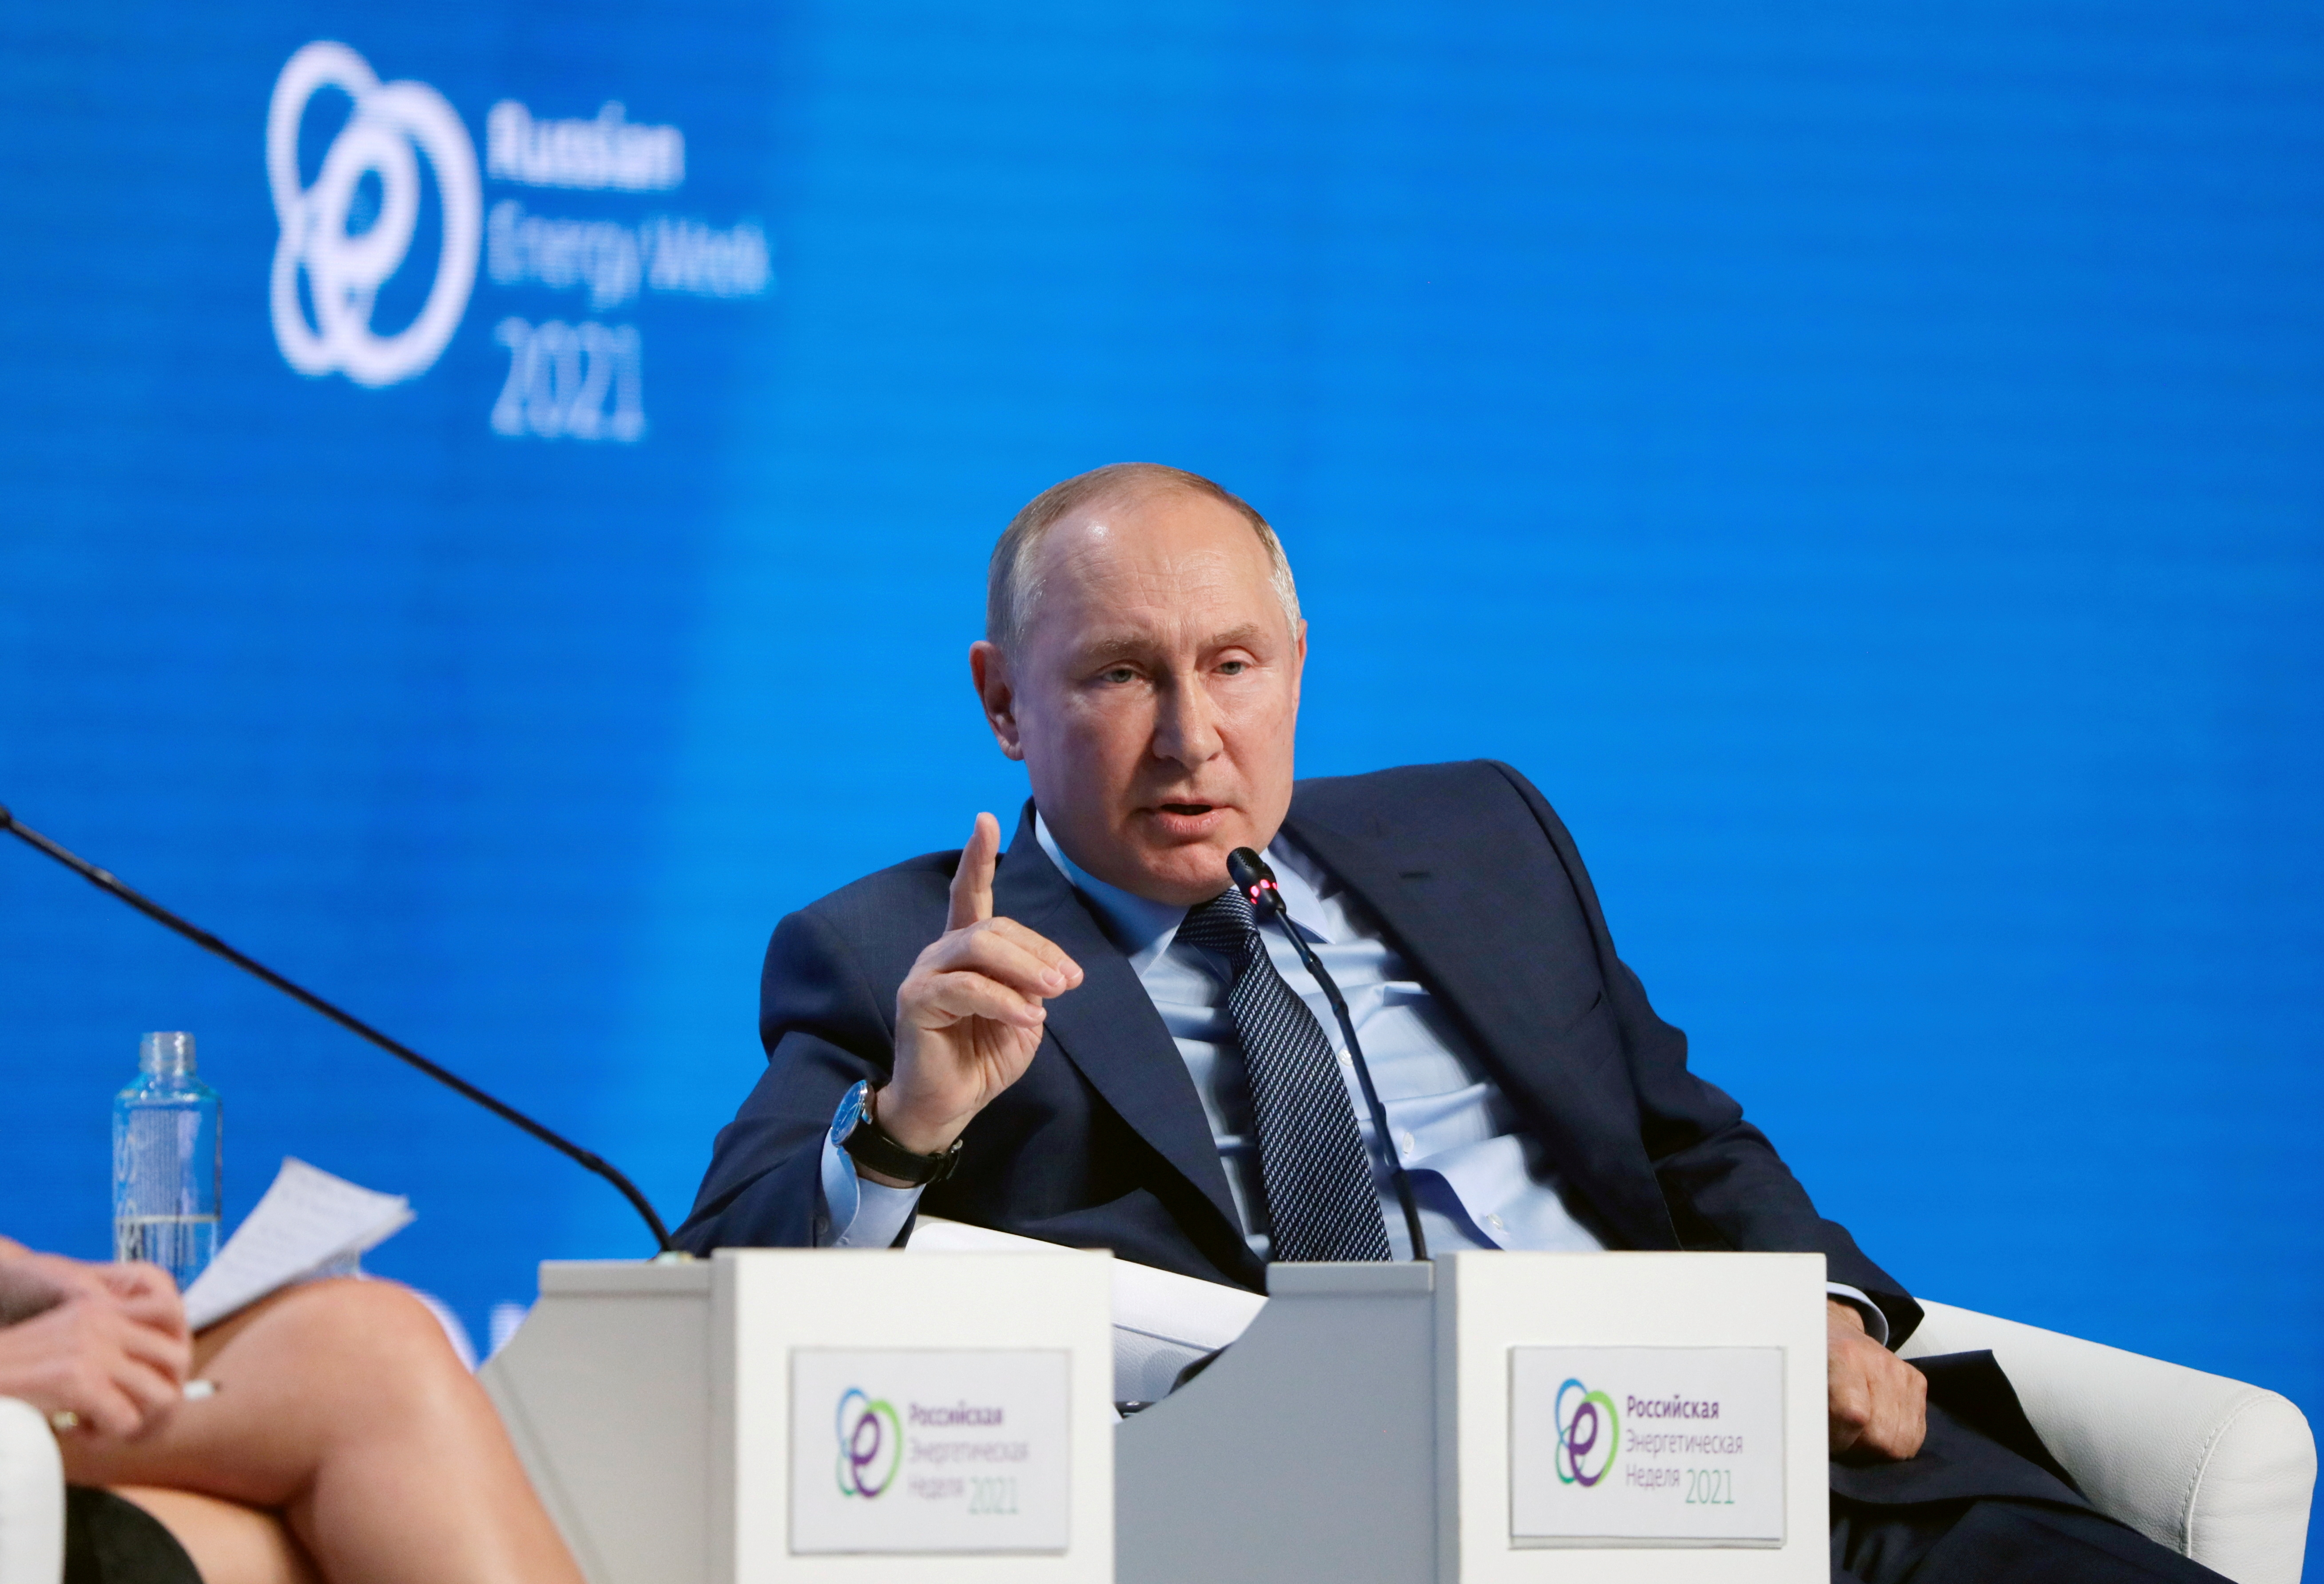 Russian President Vladimir Putin speaks during a plenary session of the Russian Energy Week International Forum in Moscow, Russia October 13, 2021. Sputnik/Mikhail Metzel/Pool via REUTERS ATTENTION EDITORS - THIS IMAGE WAS PROVIDED BY A THIRD PARTY.